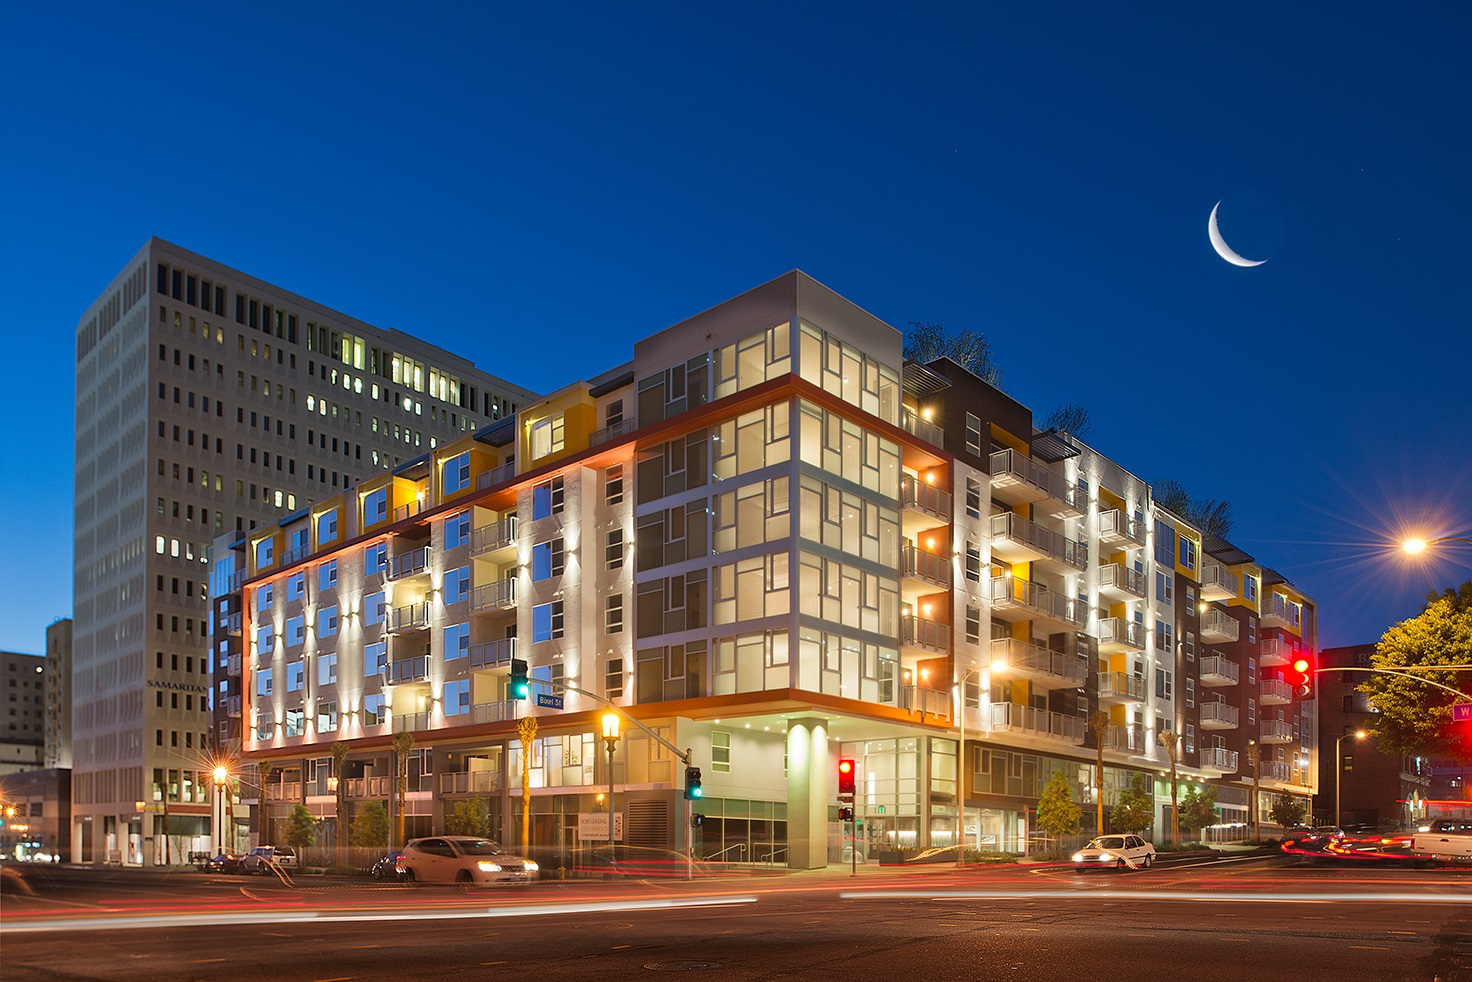 Multifamily - Commercial Brokers International has over 30 years of experience with multifamily properties. We provide you with the best possible return on your investment and the most ideal lease setups in Southern California.